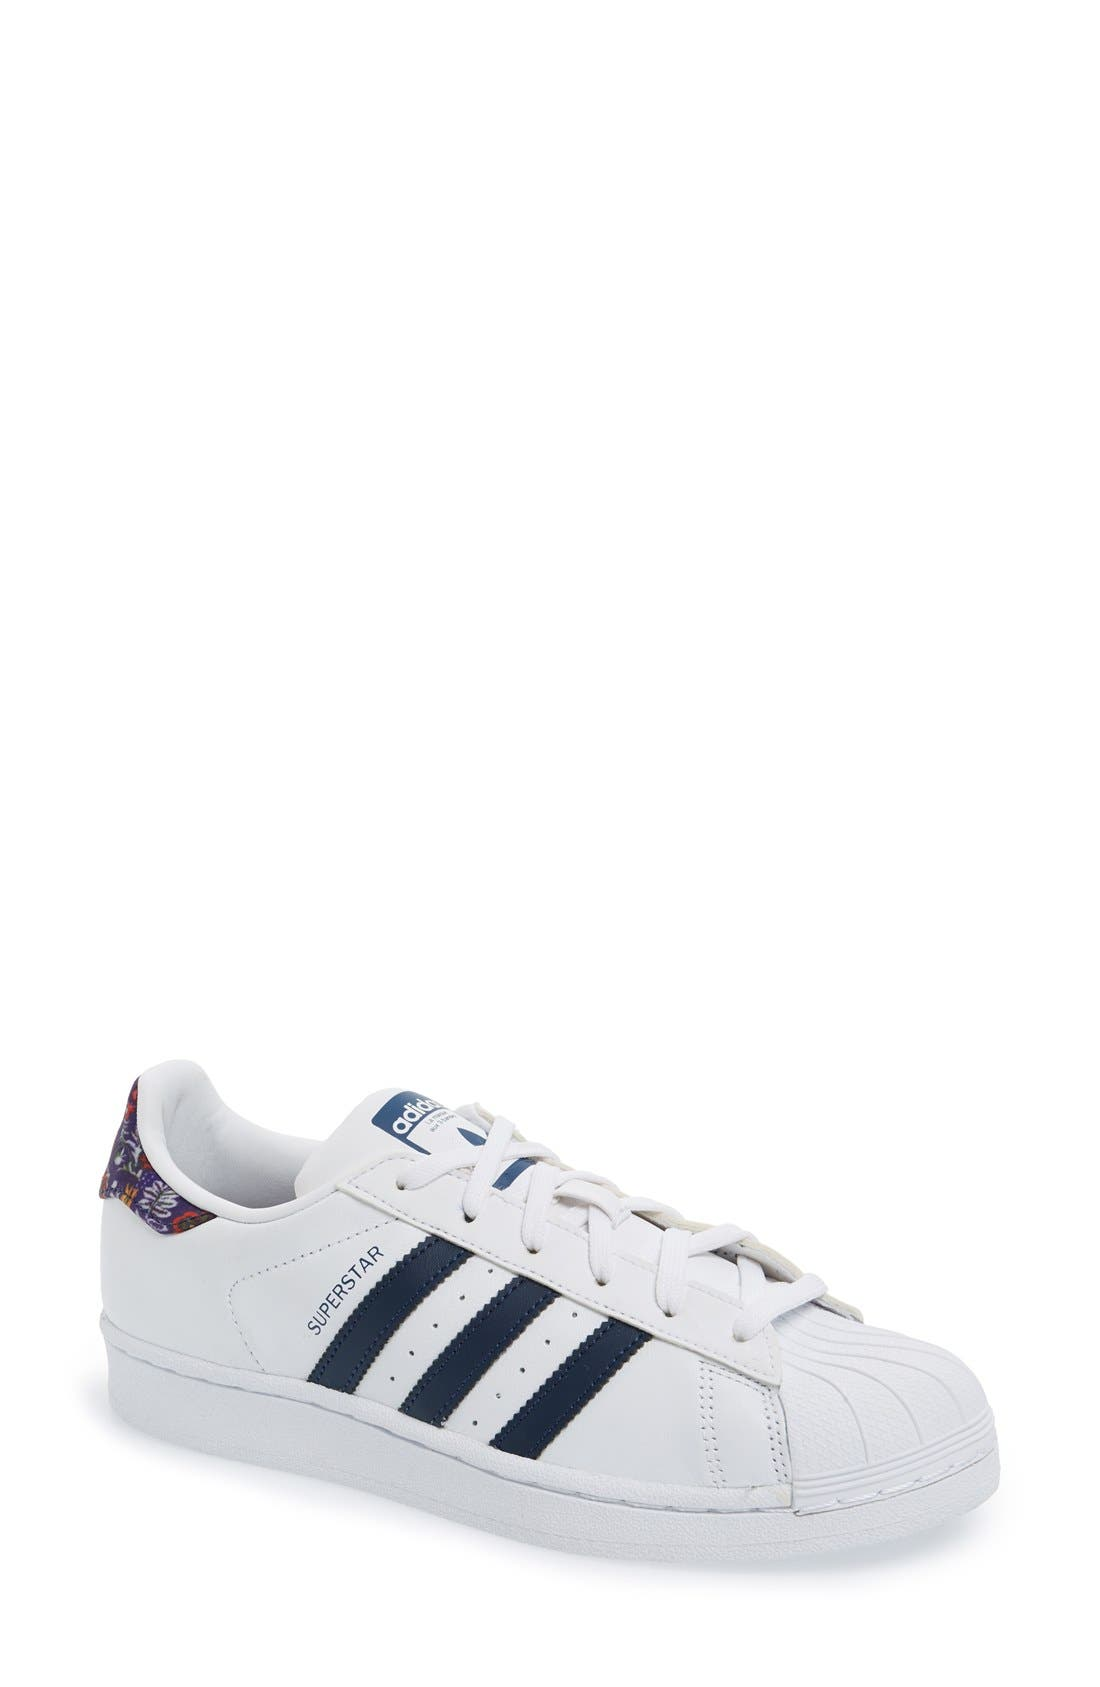 Main Image - adidas x The FARM Company Superstar Sneaker